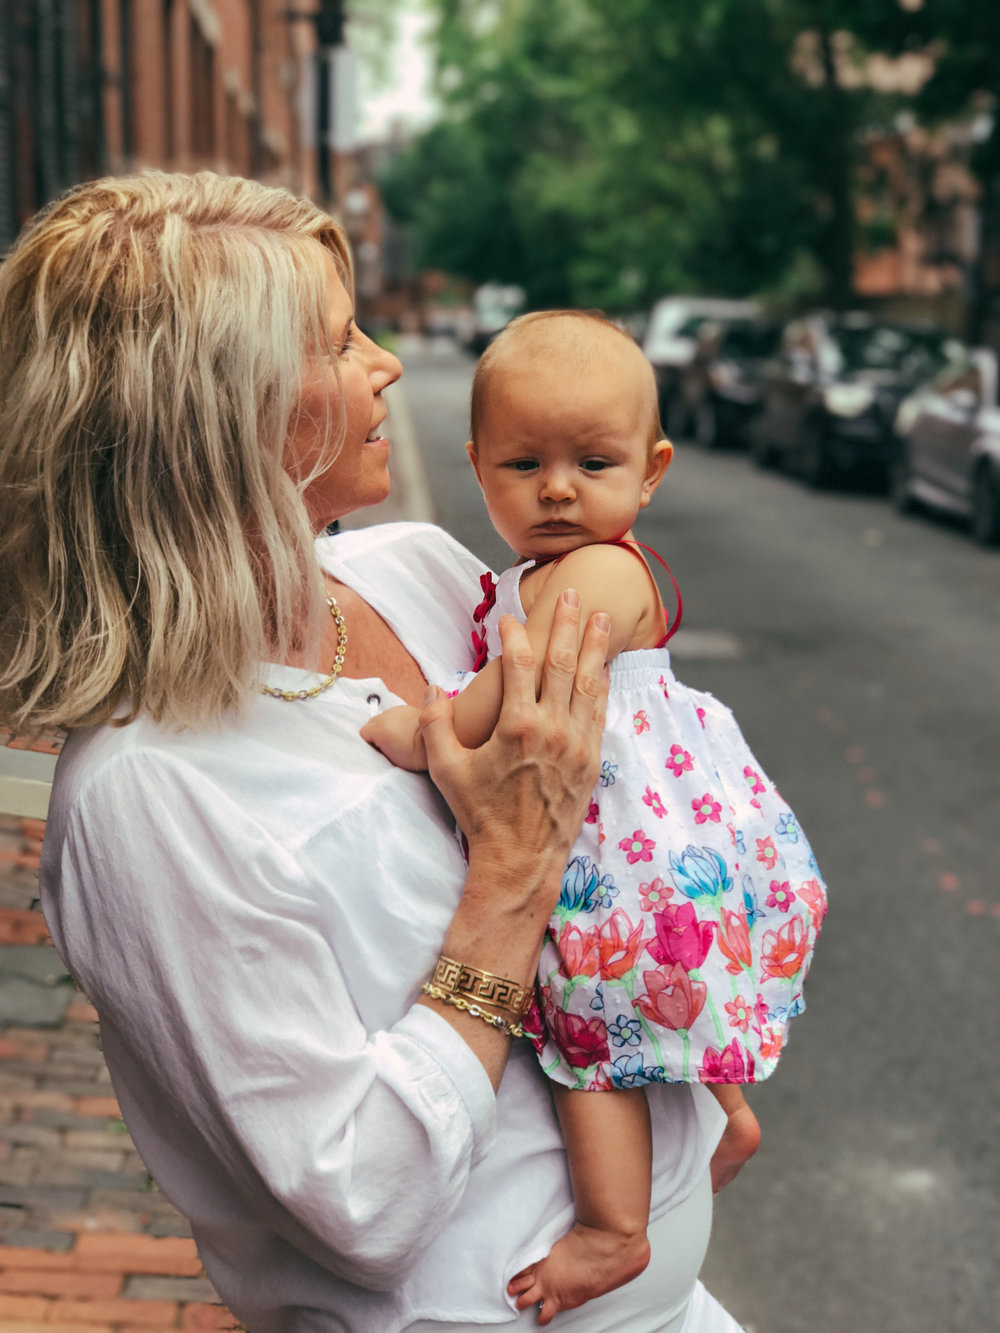 southend-boston-lifestyle-mom-style-maternity-fashion-vintage-jewelry-travel-family-blog- versace